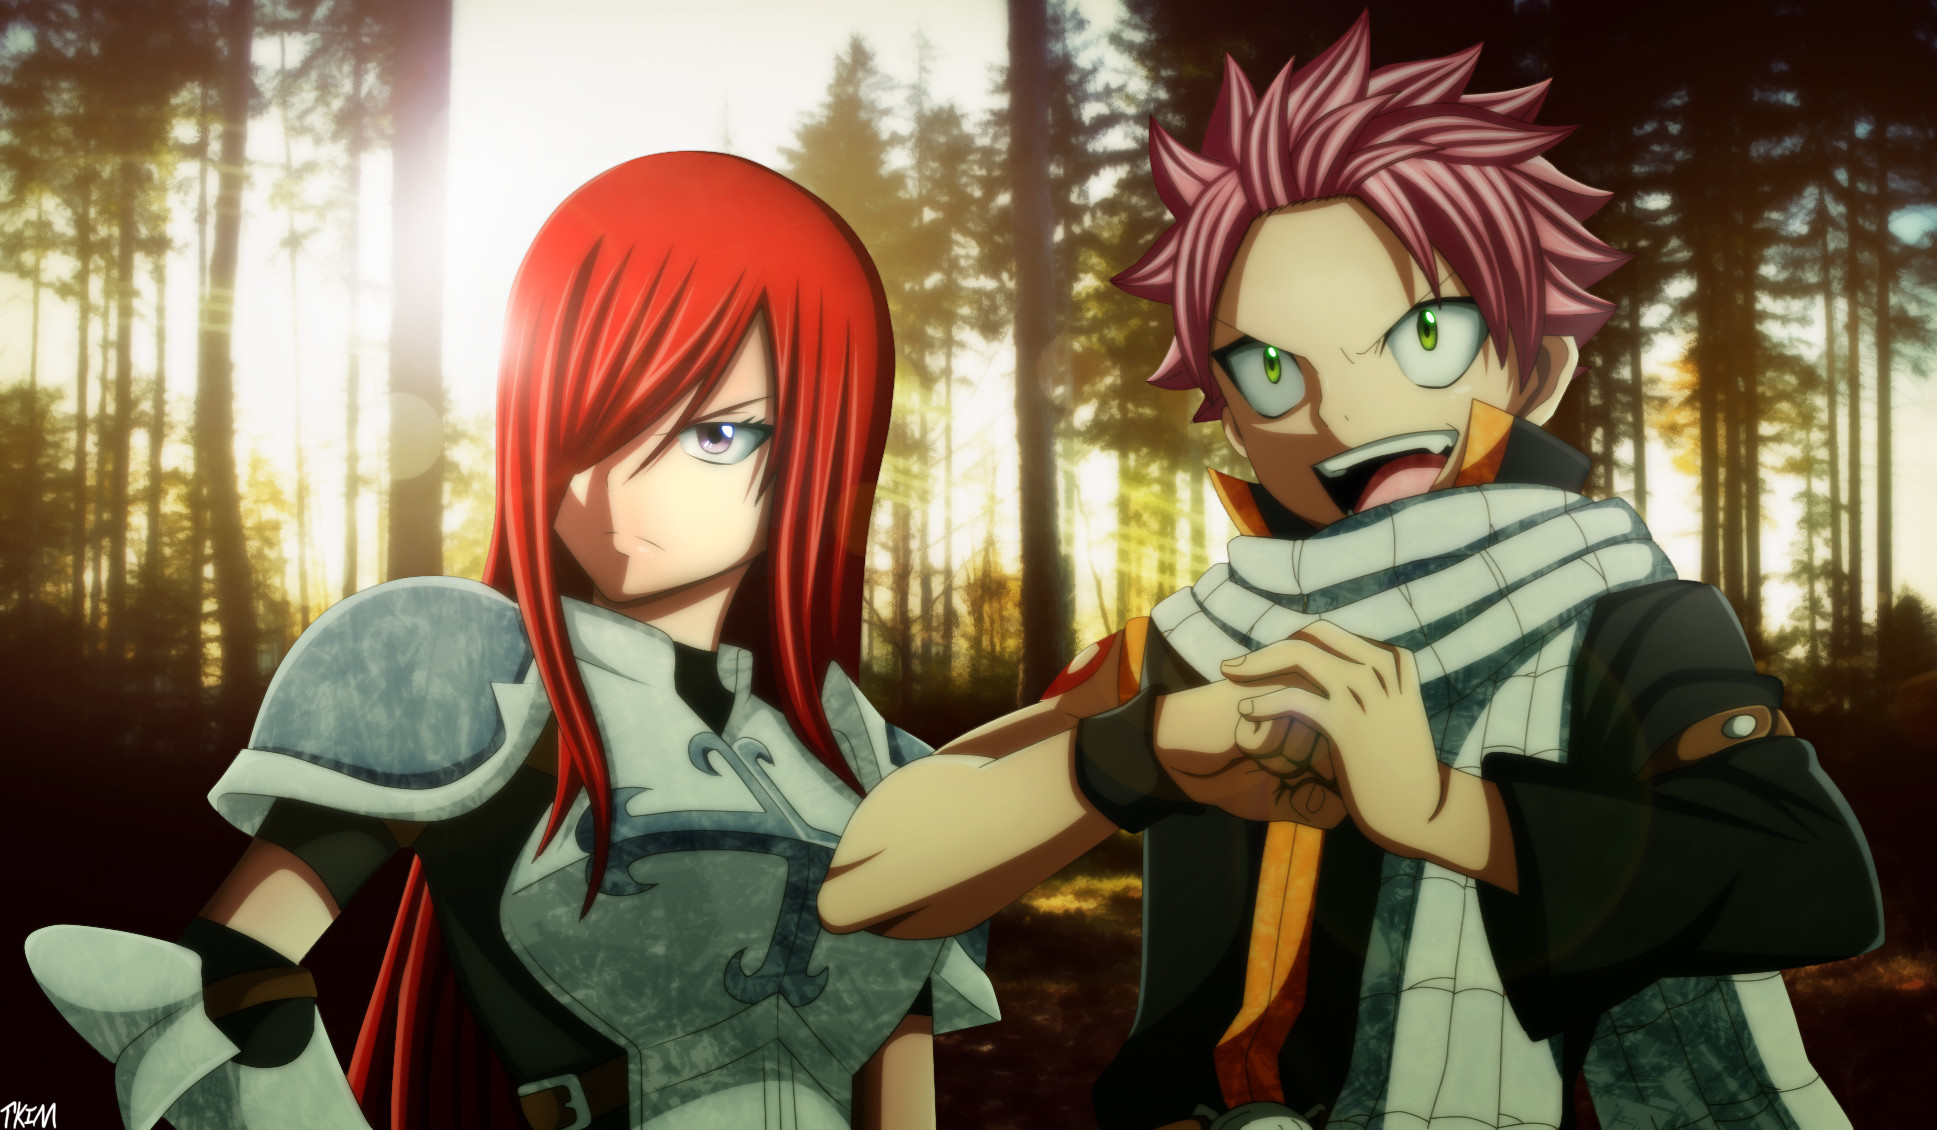 1937x1130 FAIRY TAIL · download FAIRY TAIL image · 33 Fav Erza Scarlet